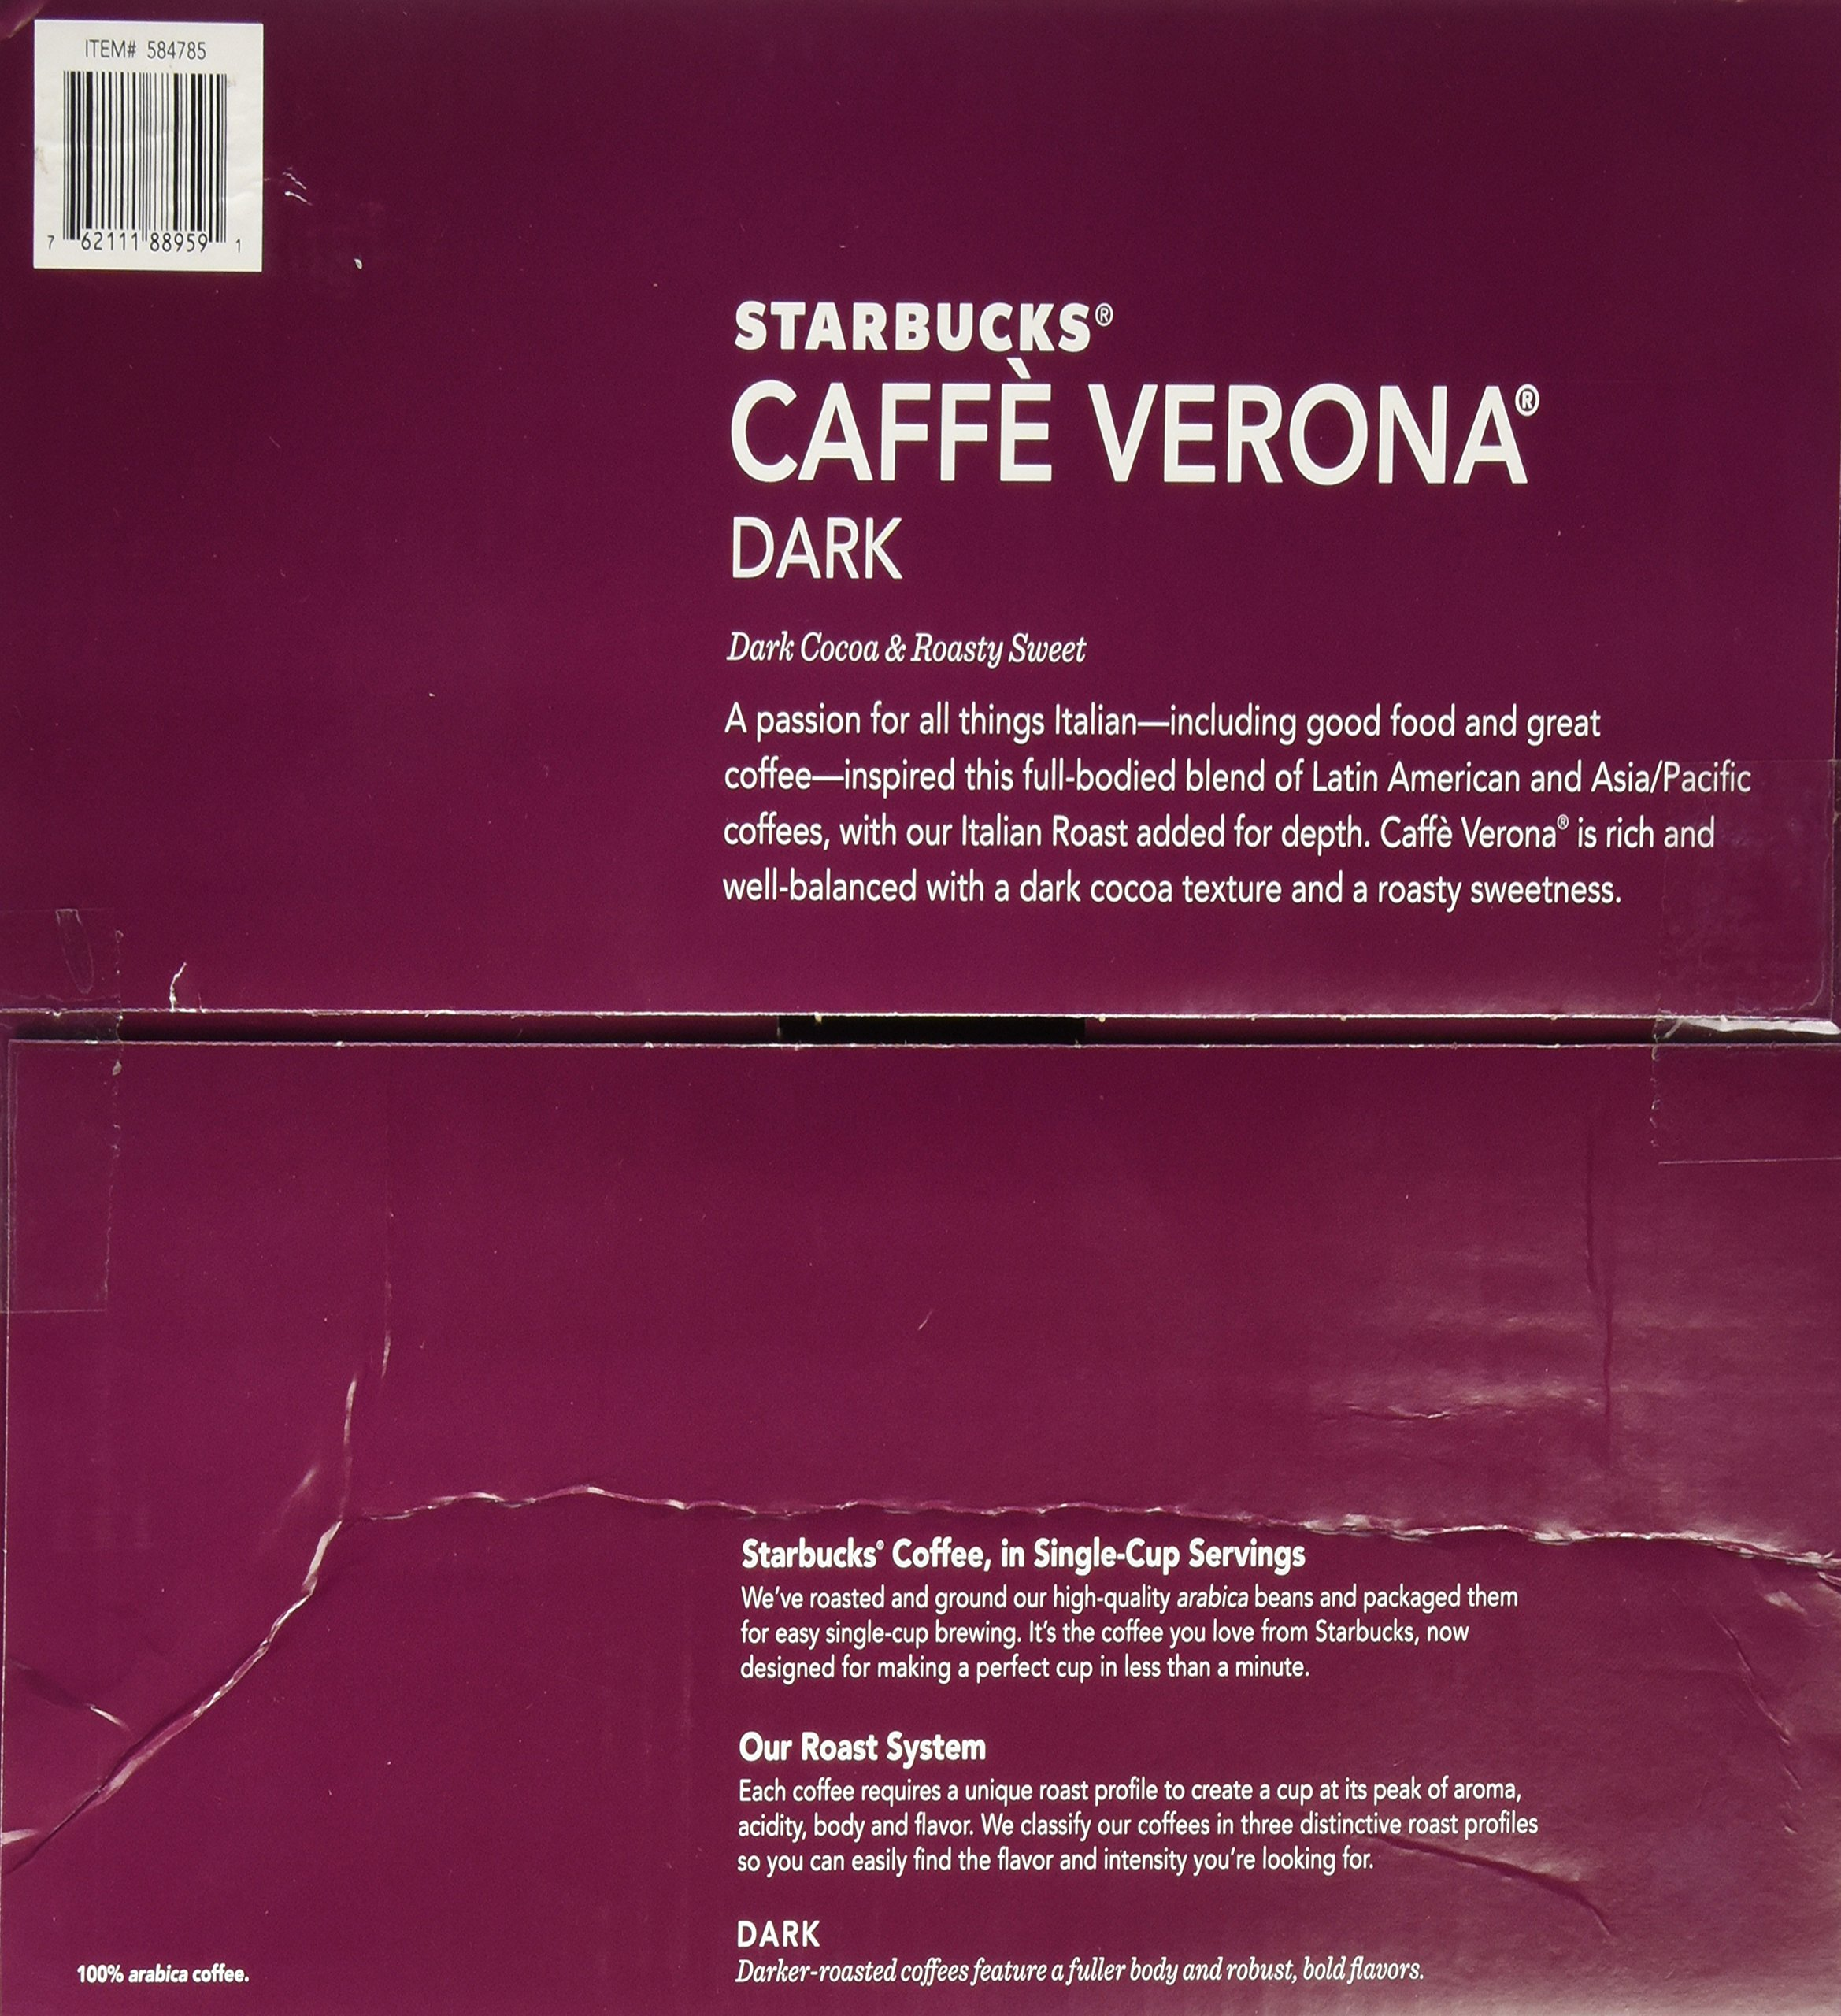 Starbucks Caffè Verona, Dark Roast, 108-Count K-Cups for Keurig Brewers by Starbucks (Image #4)